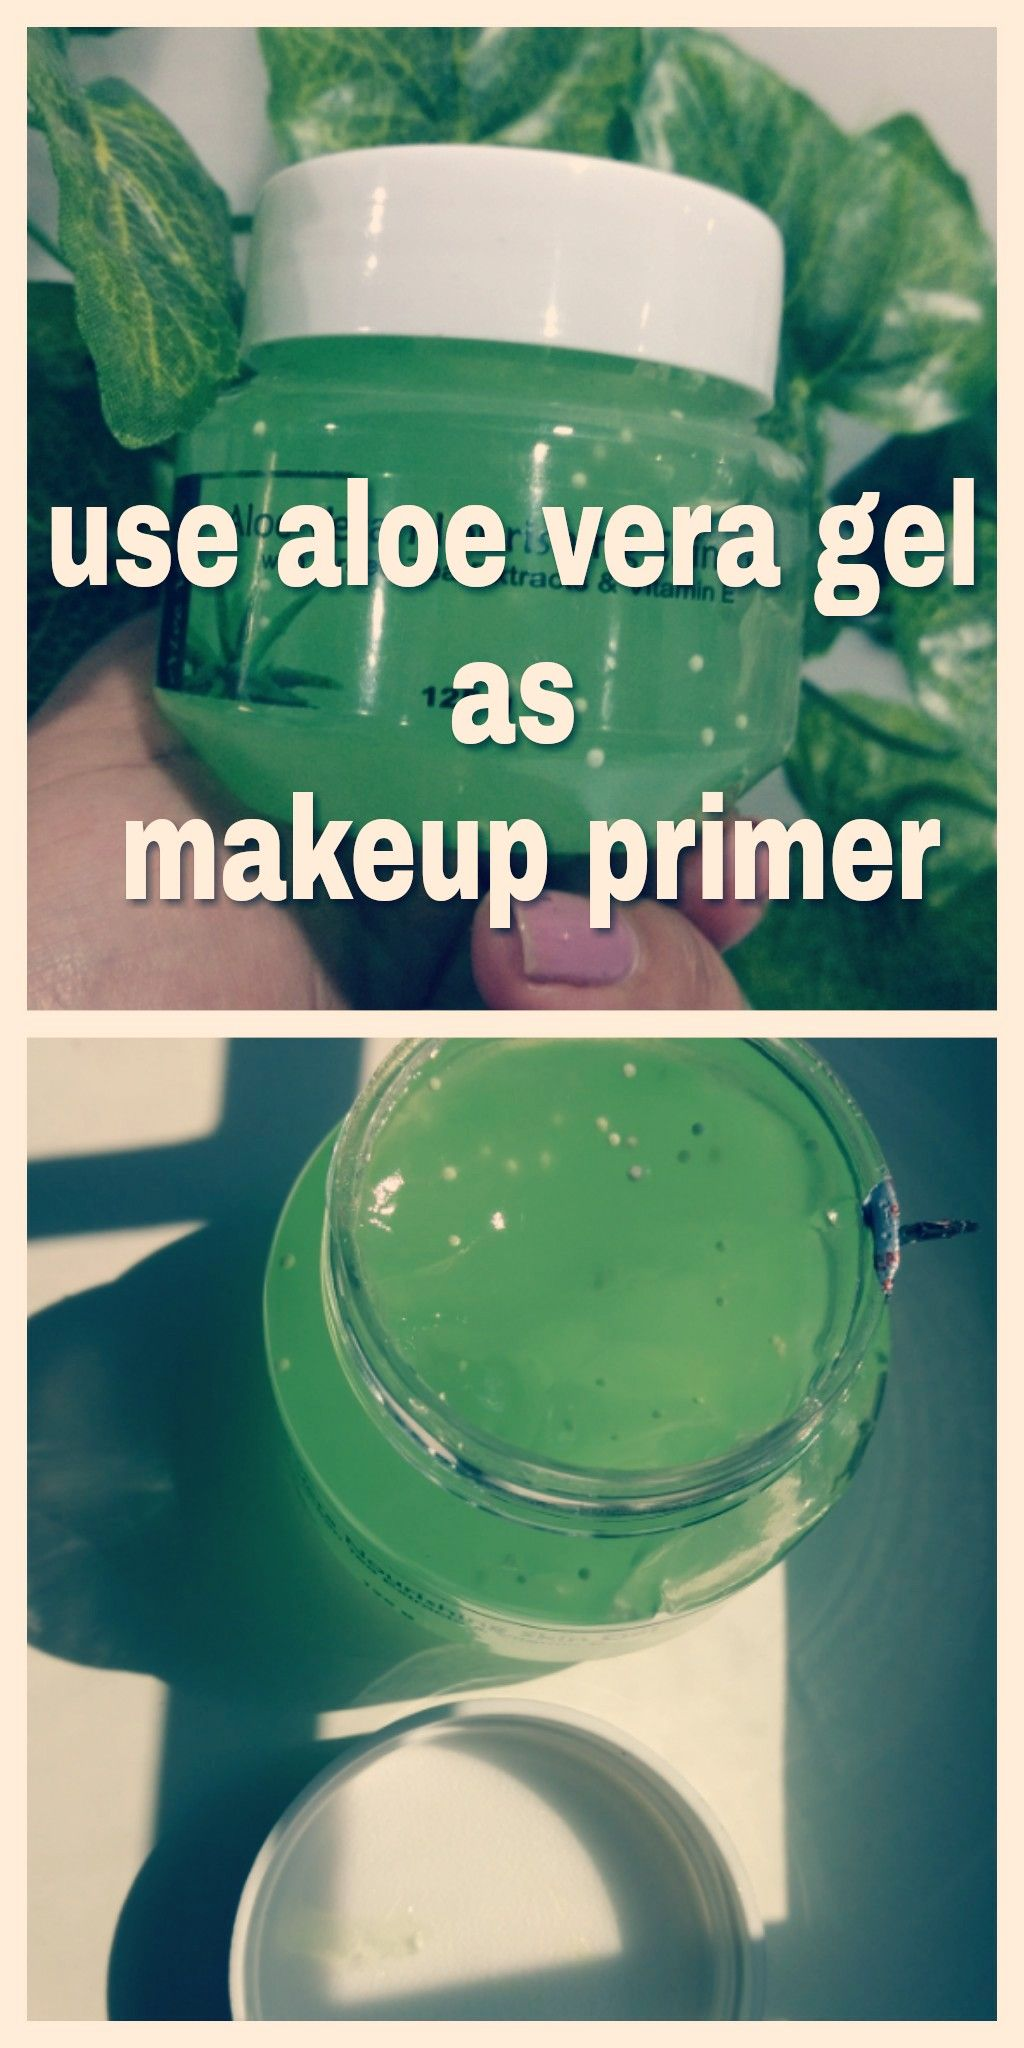 Natural makeup primer. Find out how to use Aloe Vera gel